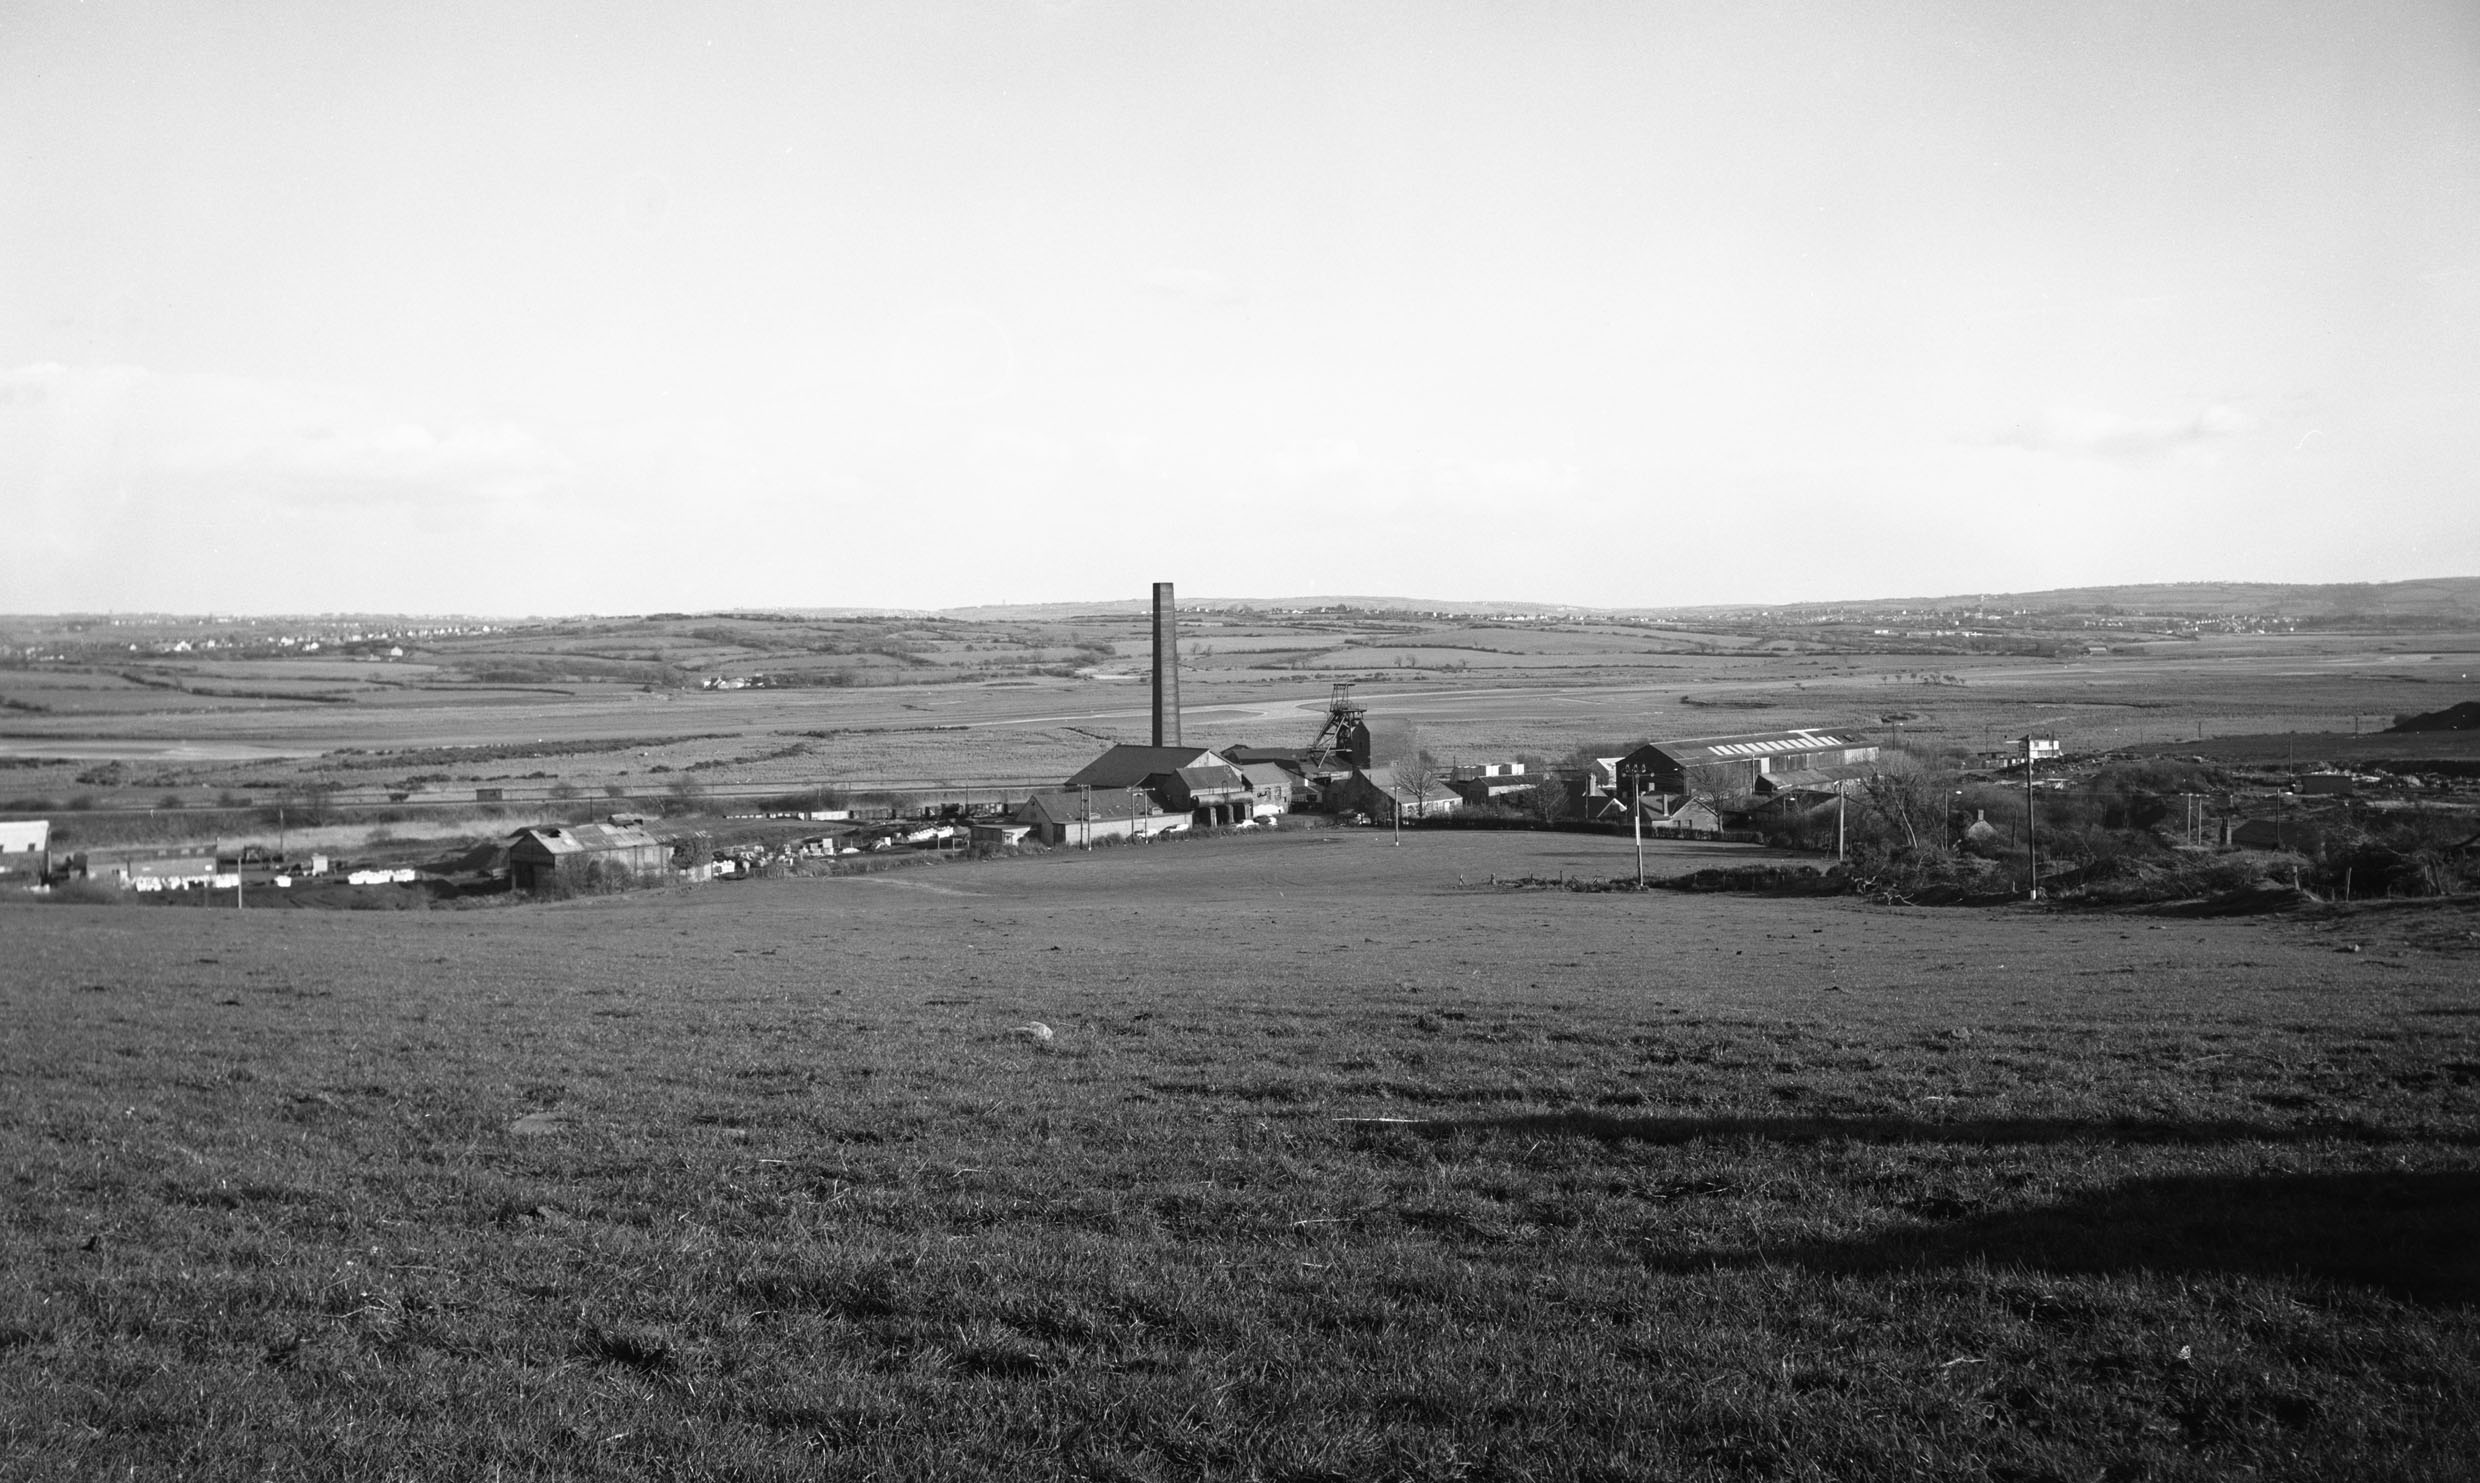 Morlais Colliery, general view  looking east across the River Llwchwr, 1978.